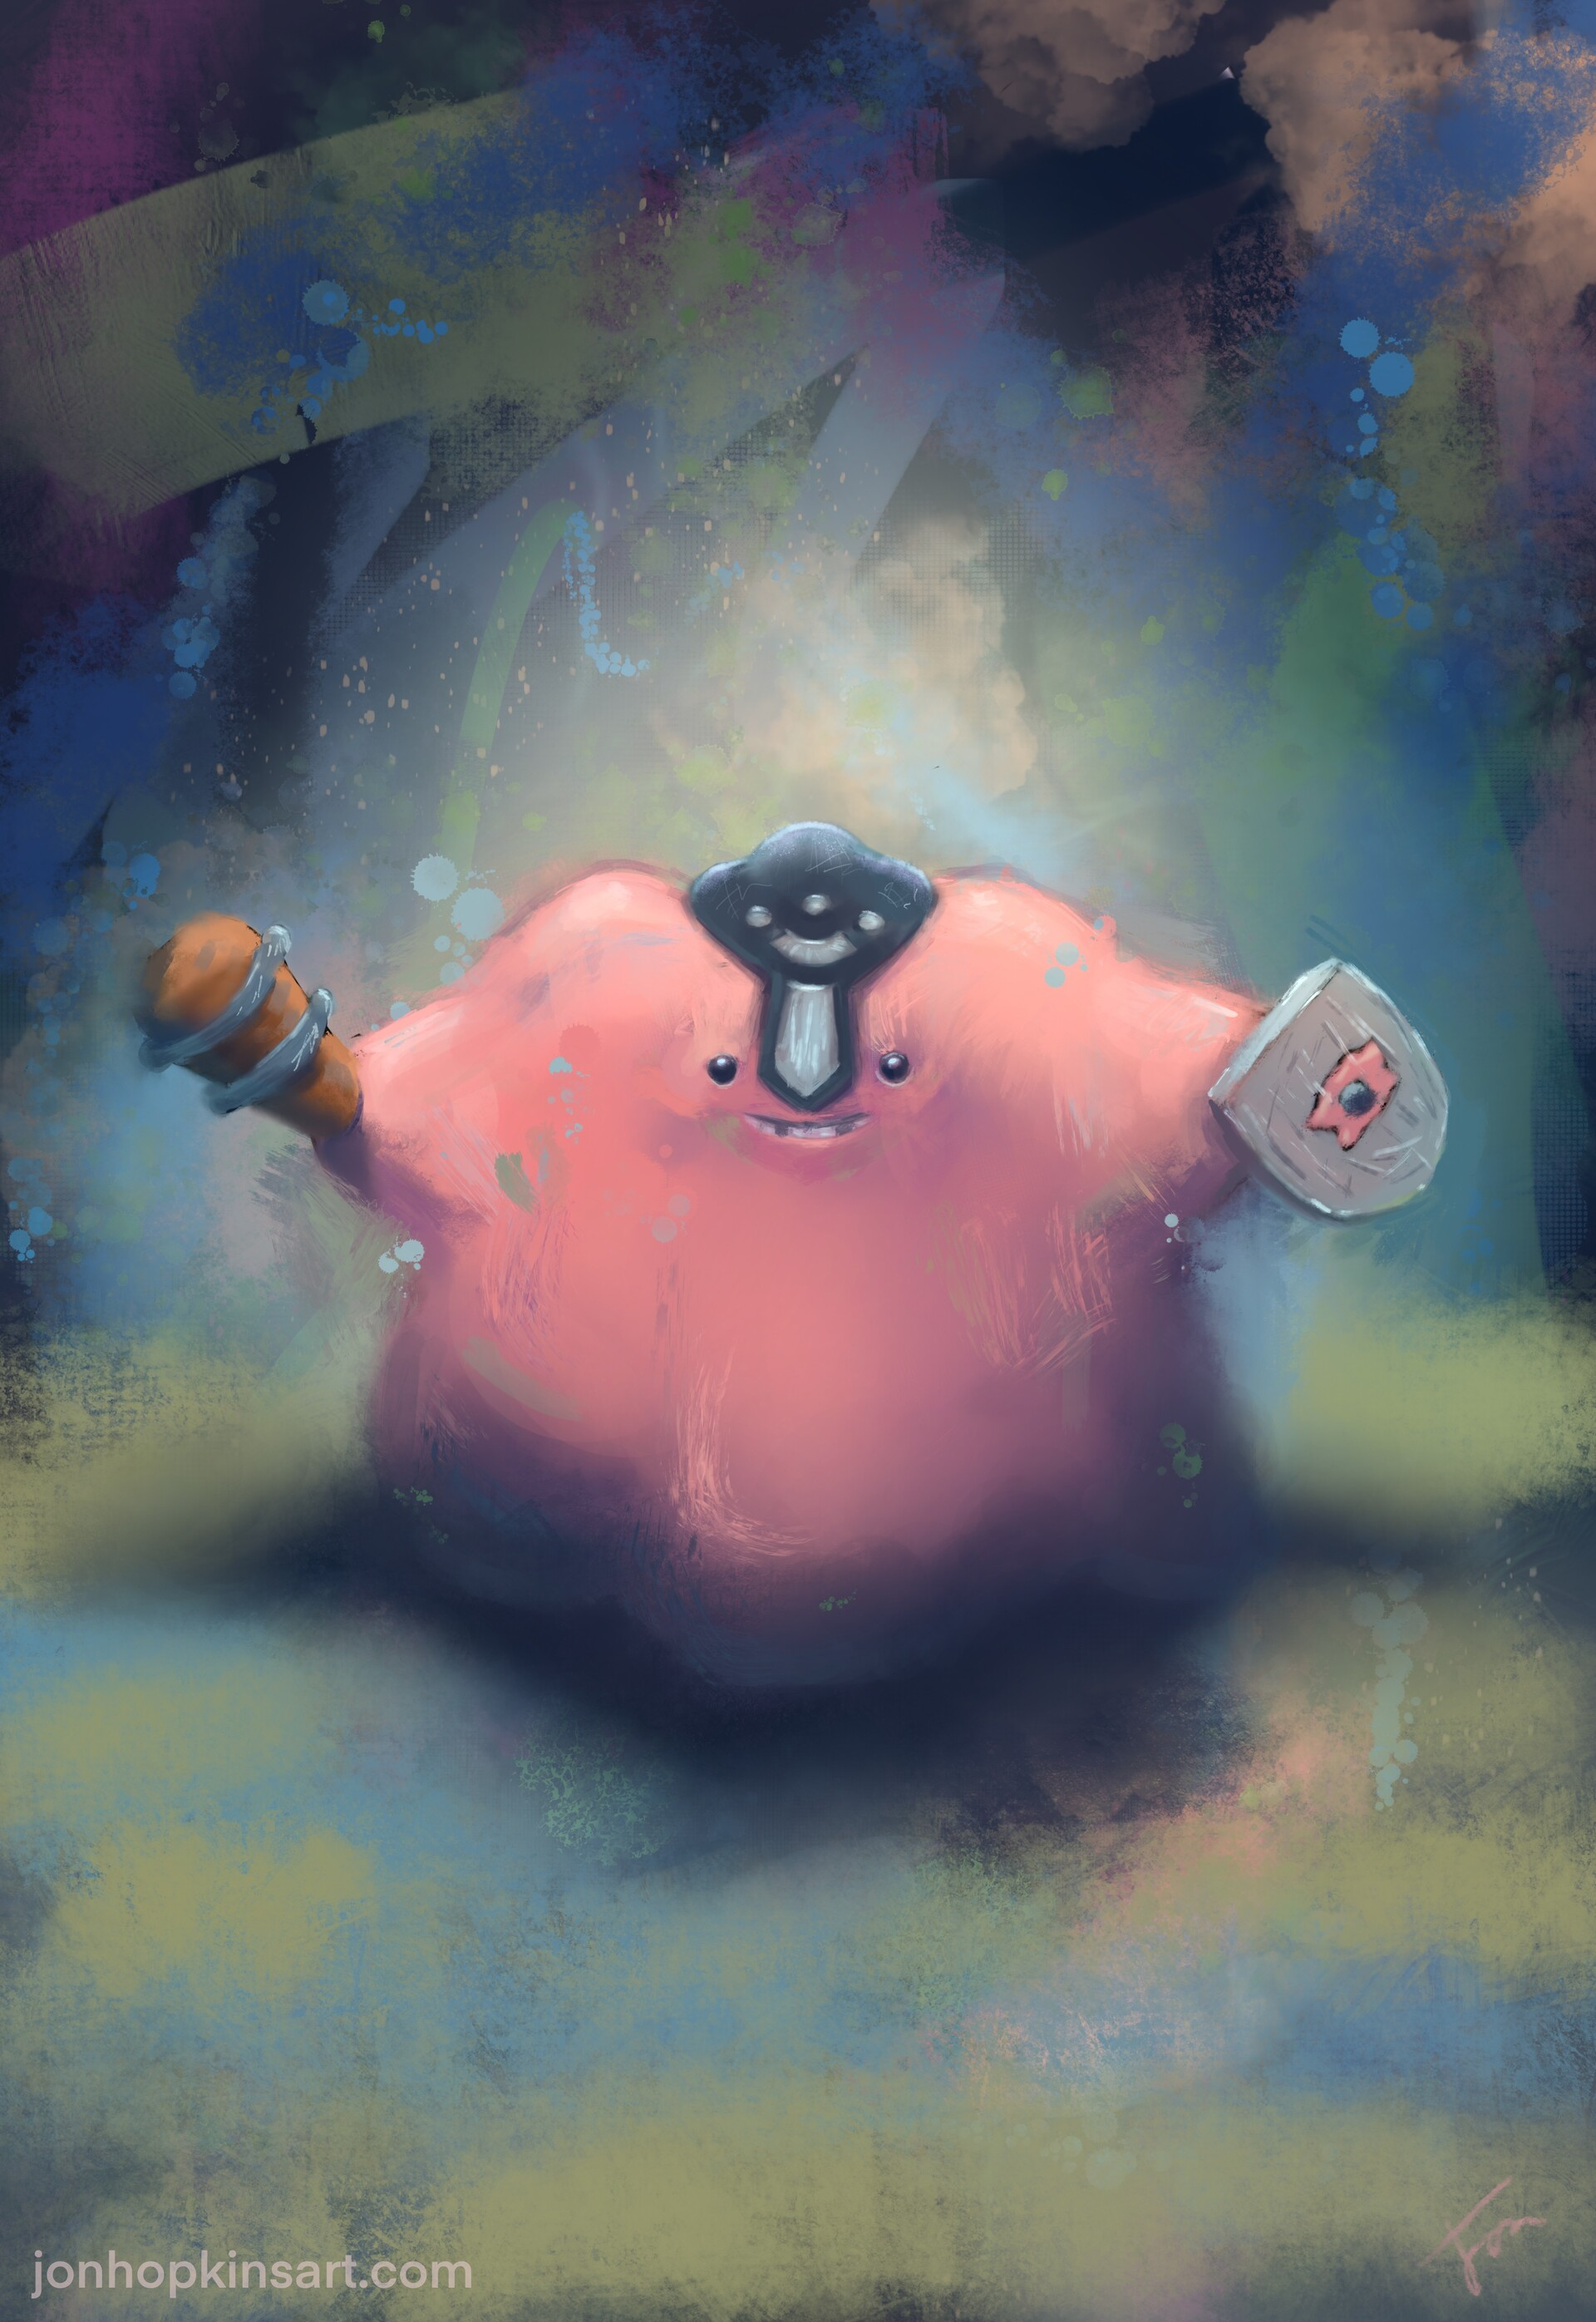 Ditto the poke-knight no.1 in the series.